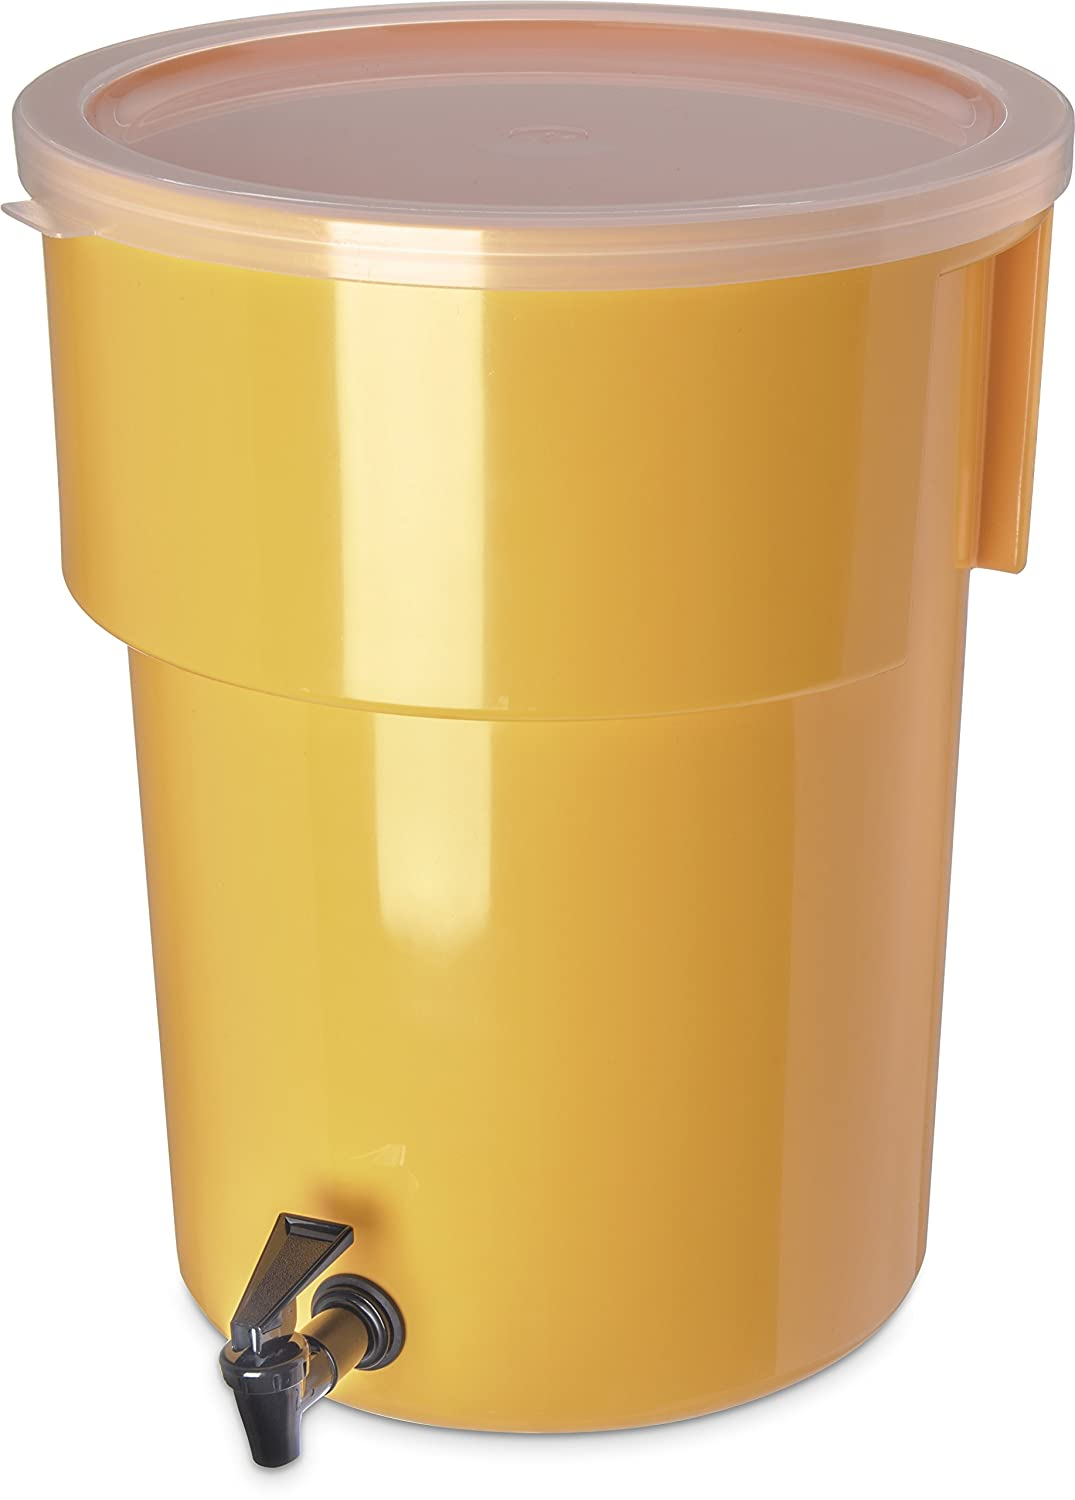 "Carlisle 221004 Polyethylene Round Beverage Dispenser, 5 gal. Capacity, 12.37"" Dia. x 15.43"" H, Yellow"